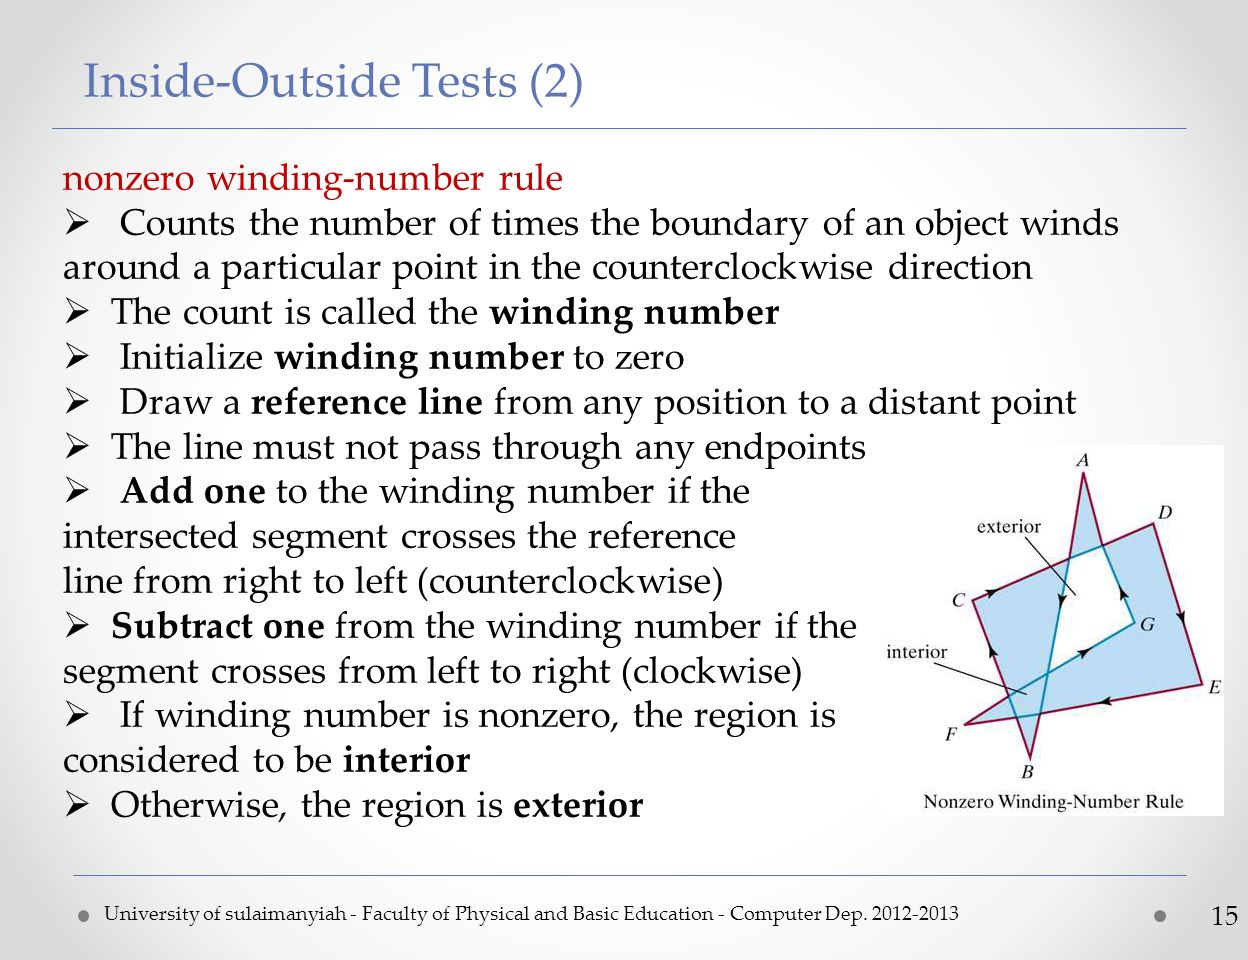 Inside-Outside Tests (2) University of sulaimanyiah - Faculty of Physical and Basic Education - Computer Dep. 2012-2013 15 nonzero winding-number rule